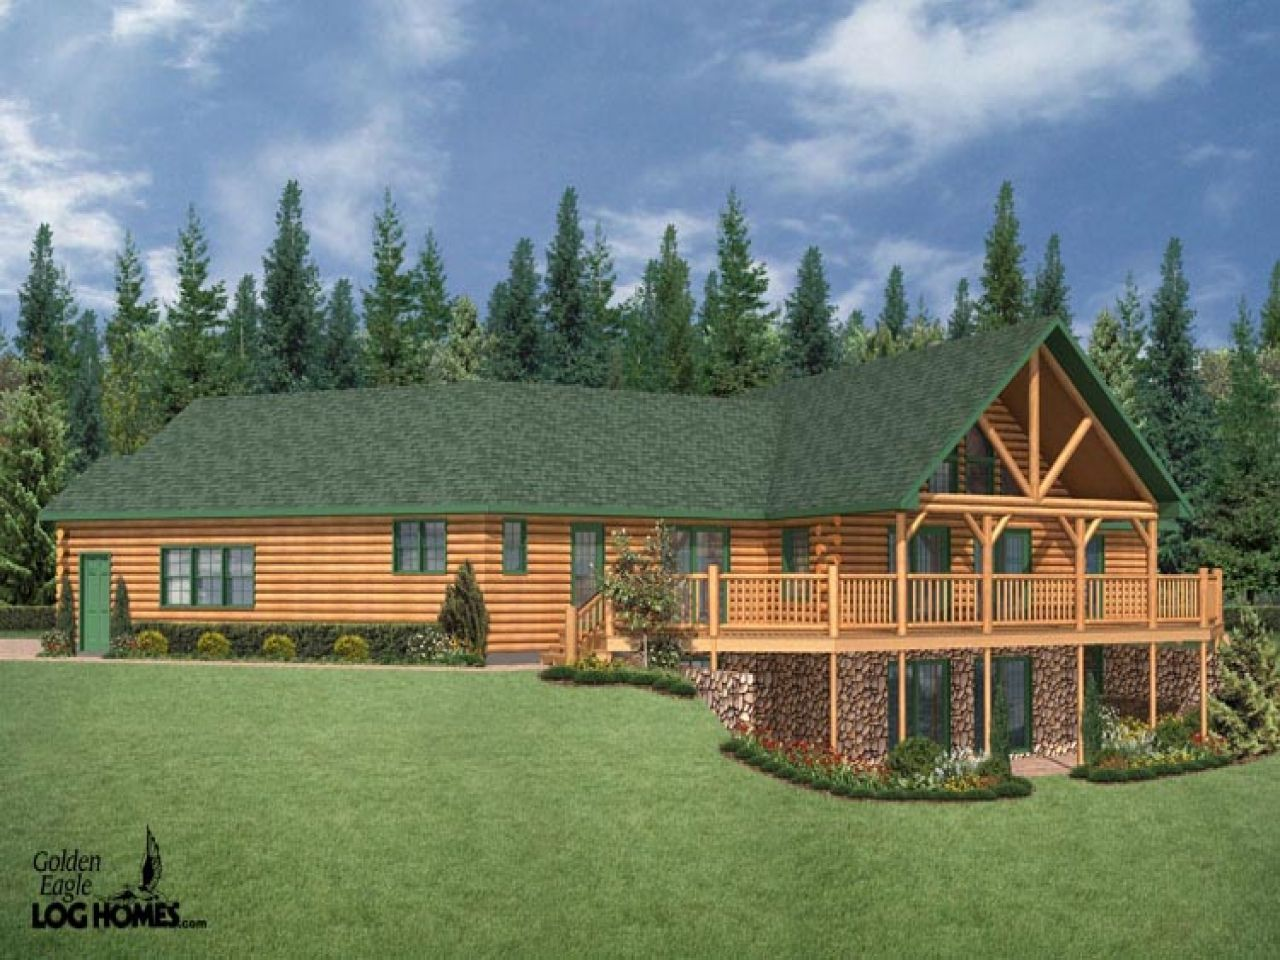 style log homes cabin ranch home plans modular prices   Home Design     style log homes cabin ranch home plans modular prices   Home Design    Pinterest   Ranch  Ranch style and Cabin